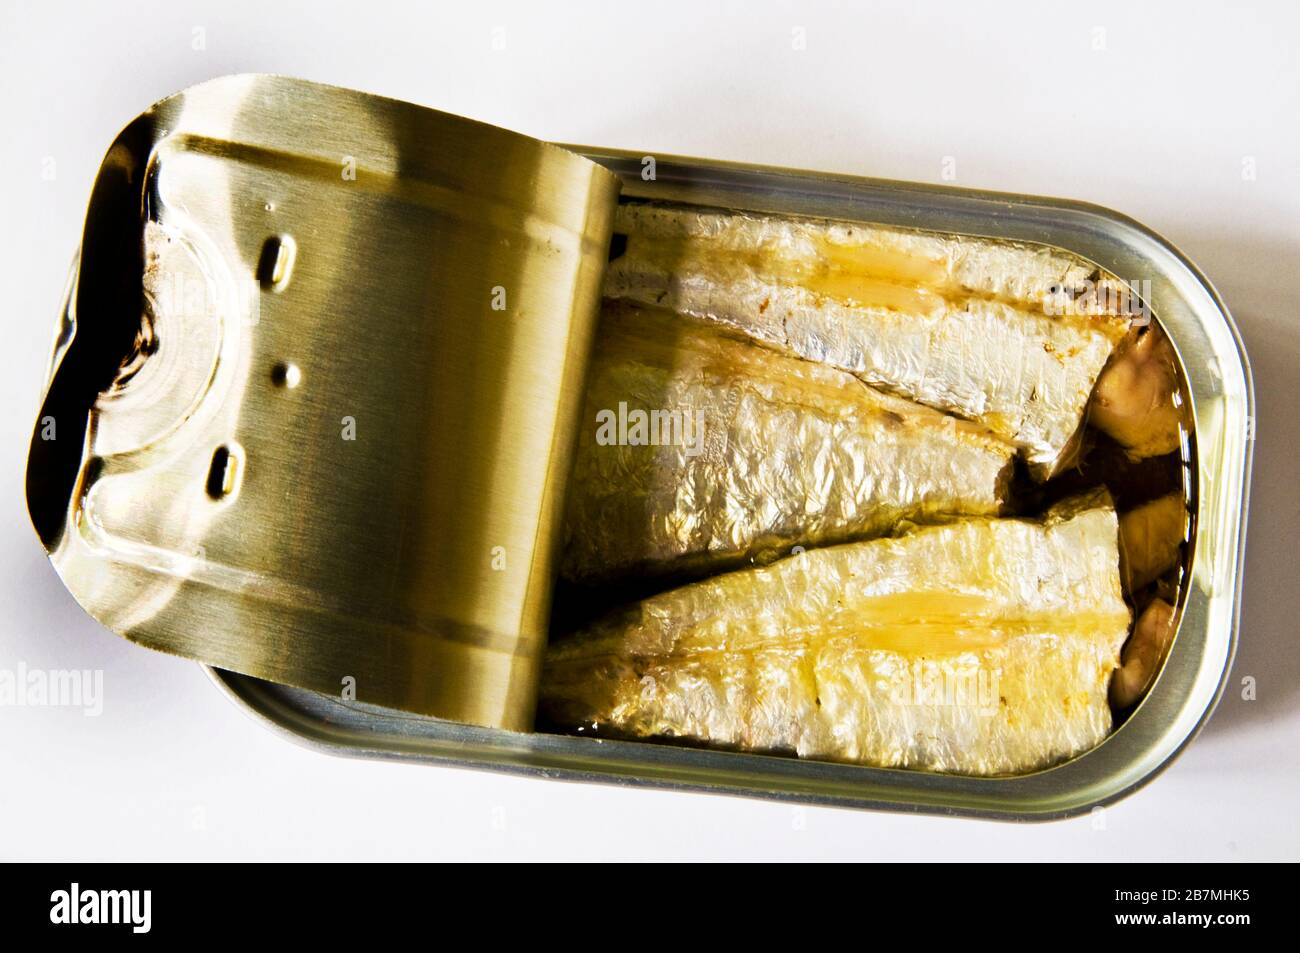 Sardines are a nutrient-rich small fish and a a source of omega-3 fatty acid. They are commonly served in cans. Stock Photo